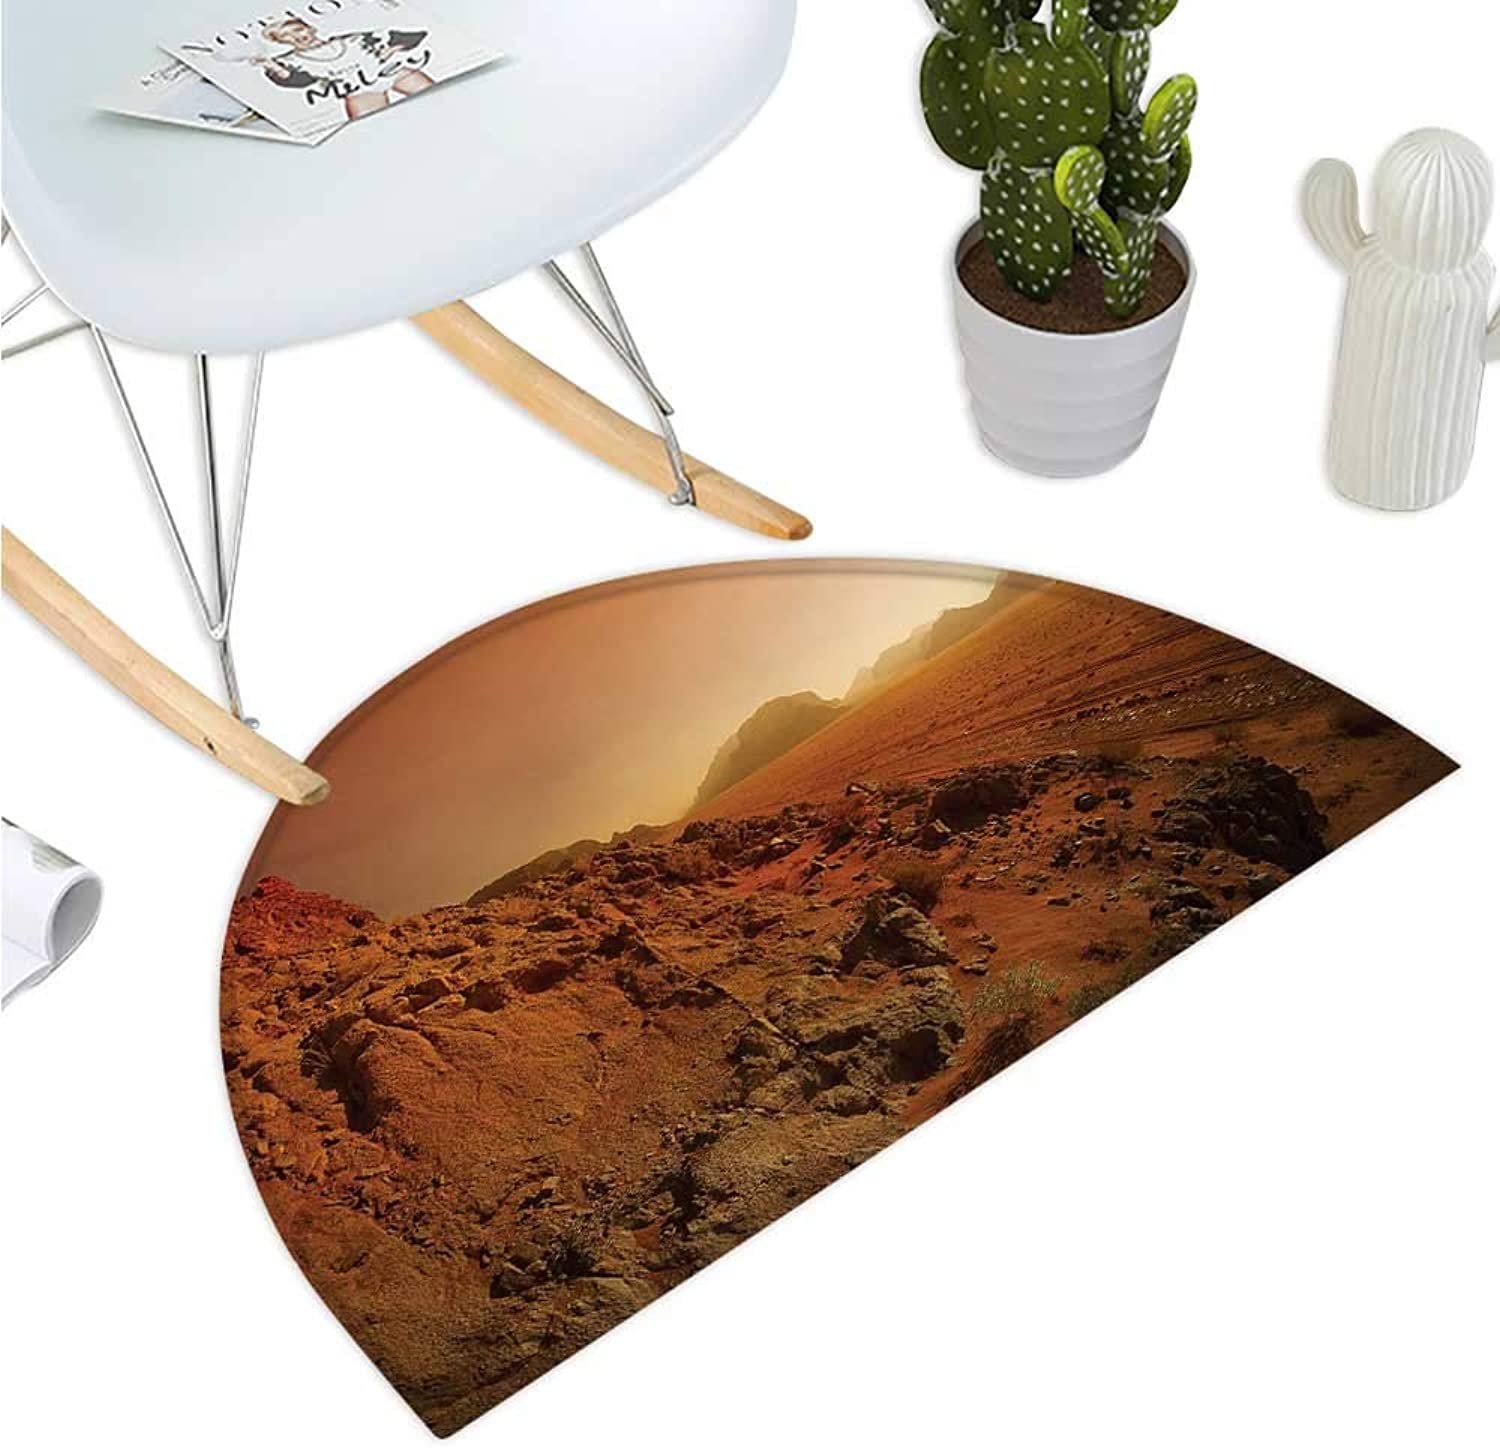 Galaxy Semicircular Cushion Landscape from The Movie Fantastic Fictional Galaxy Clash Pattern Sunset Mountains Bathroom Mat H 39.3  xD 59  Brown Yellow